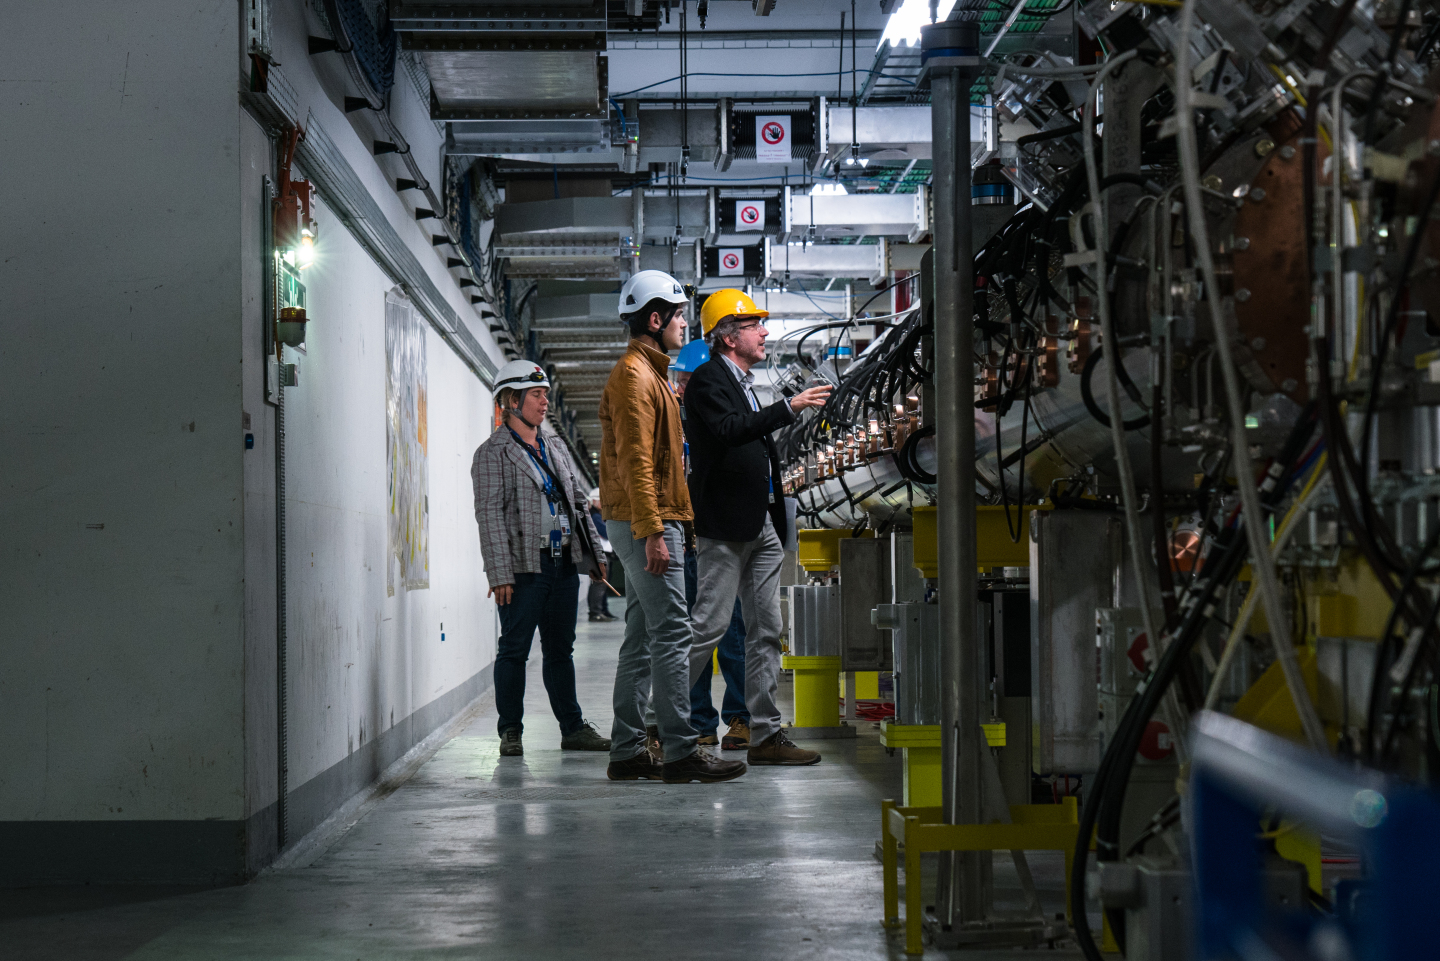 CERN unveils its' latest accelerator, Linac 4